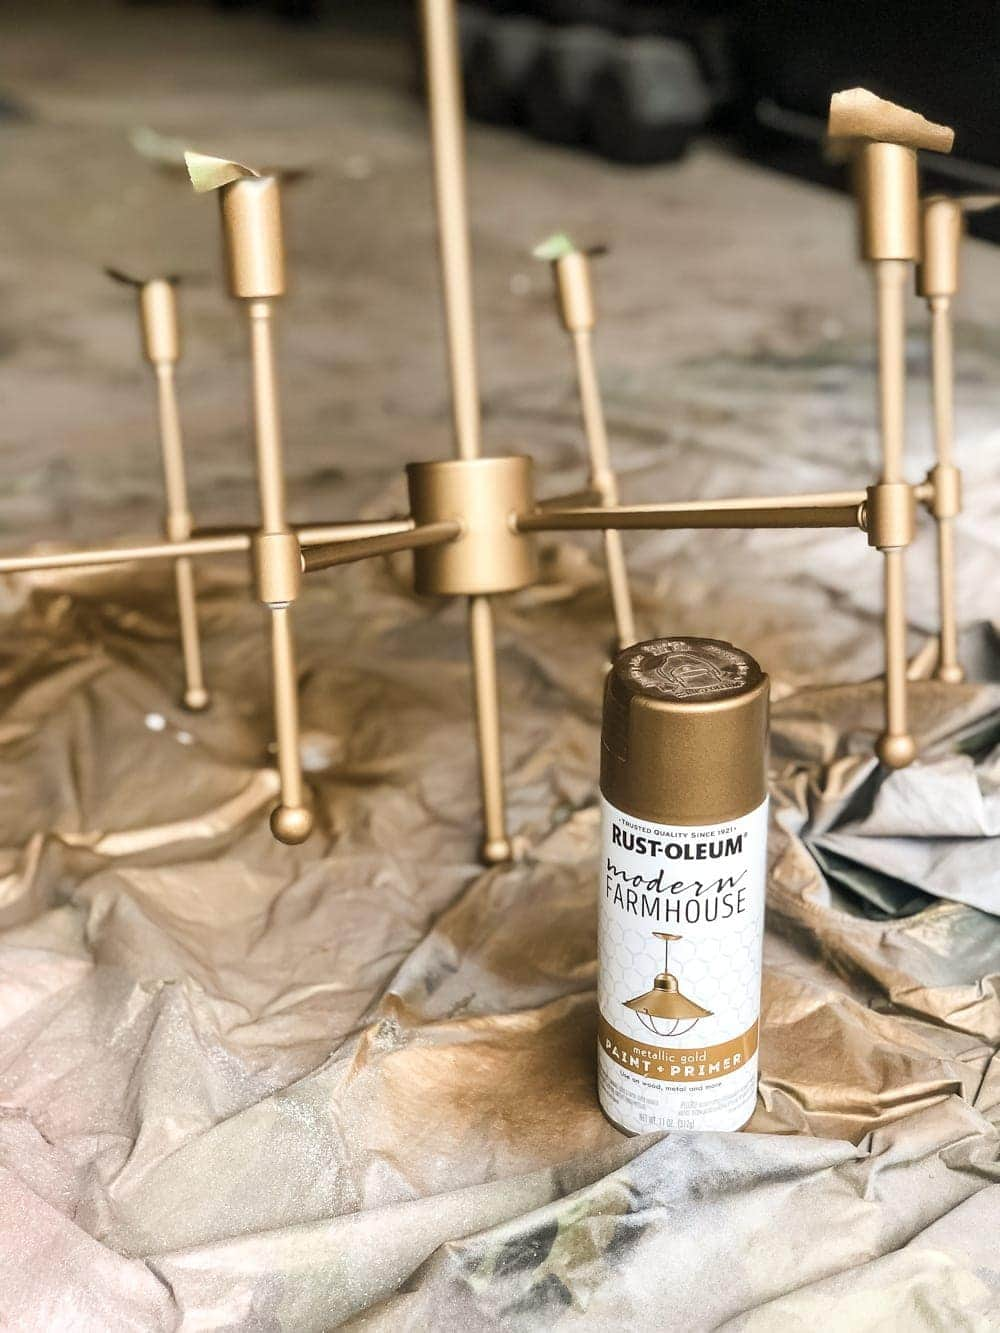 The best aged brass spray paint to create a high end designer look on anything easily and inexpensively.